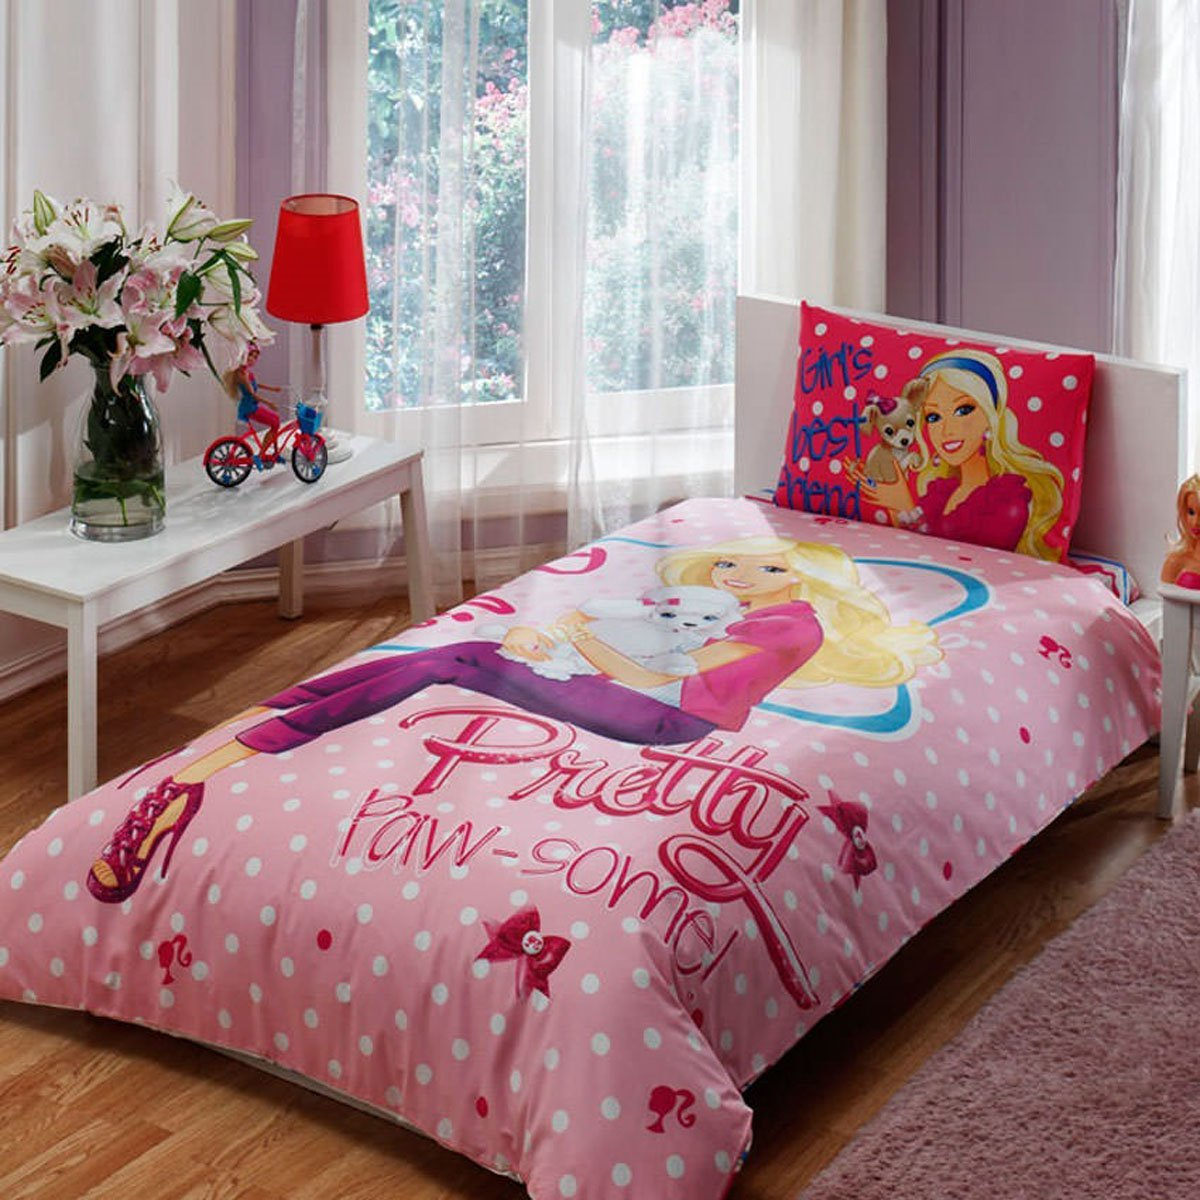 Barbie Pretty, Bedding Duvet Cover Set, Single / Twin